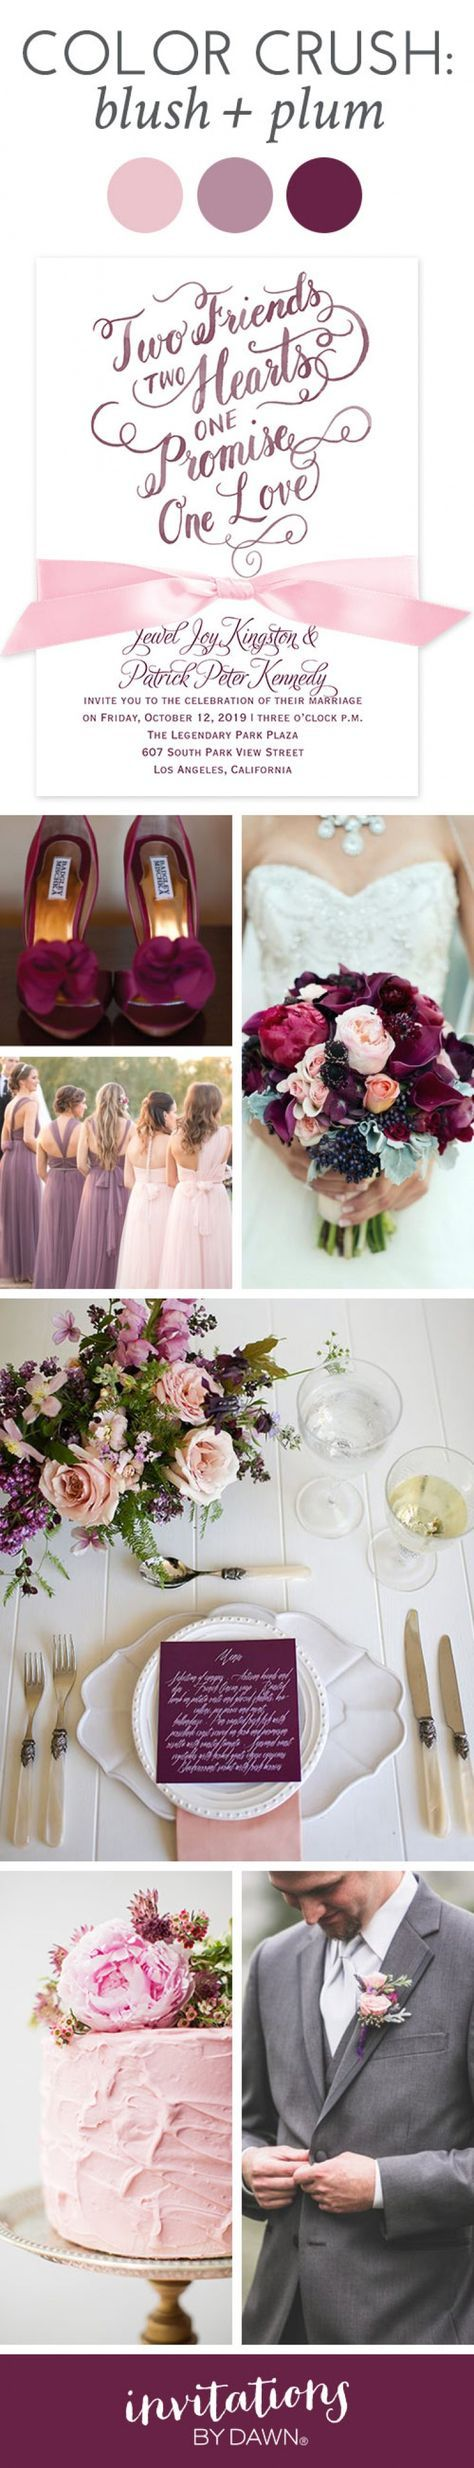 Color Crush: Blush and Plum